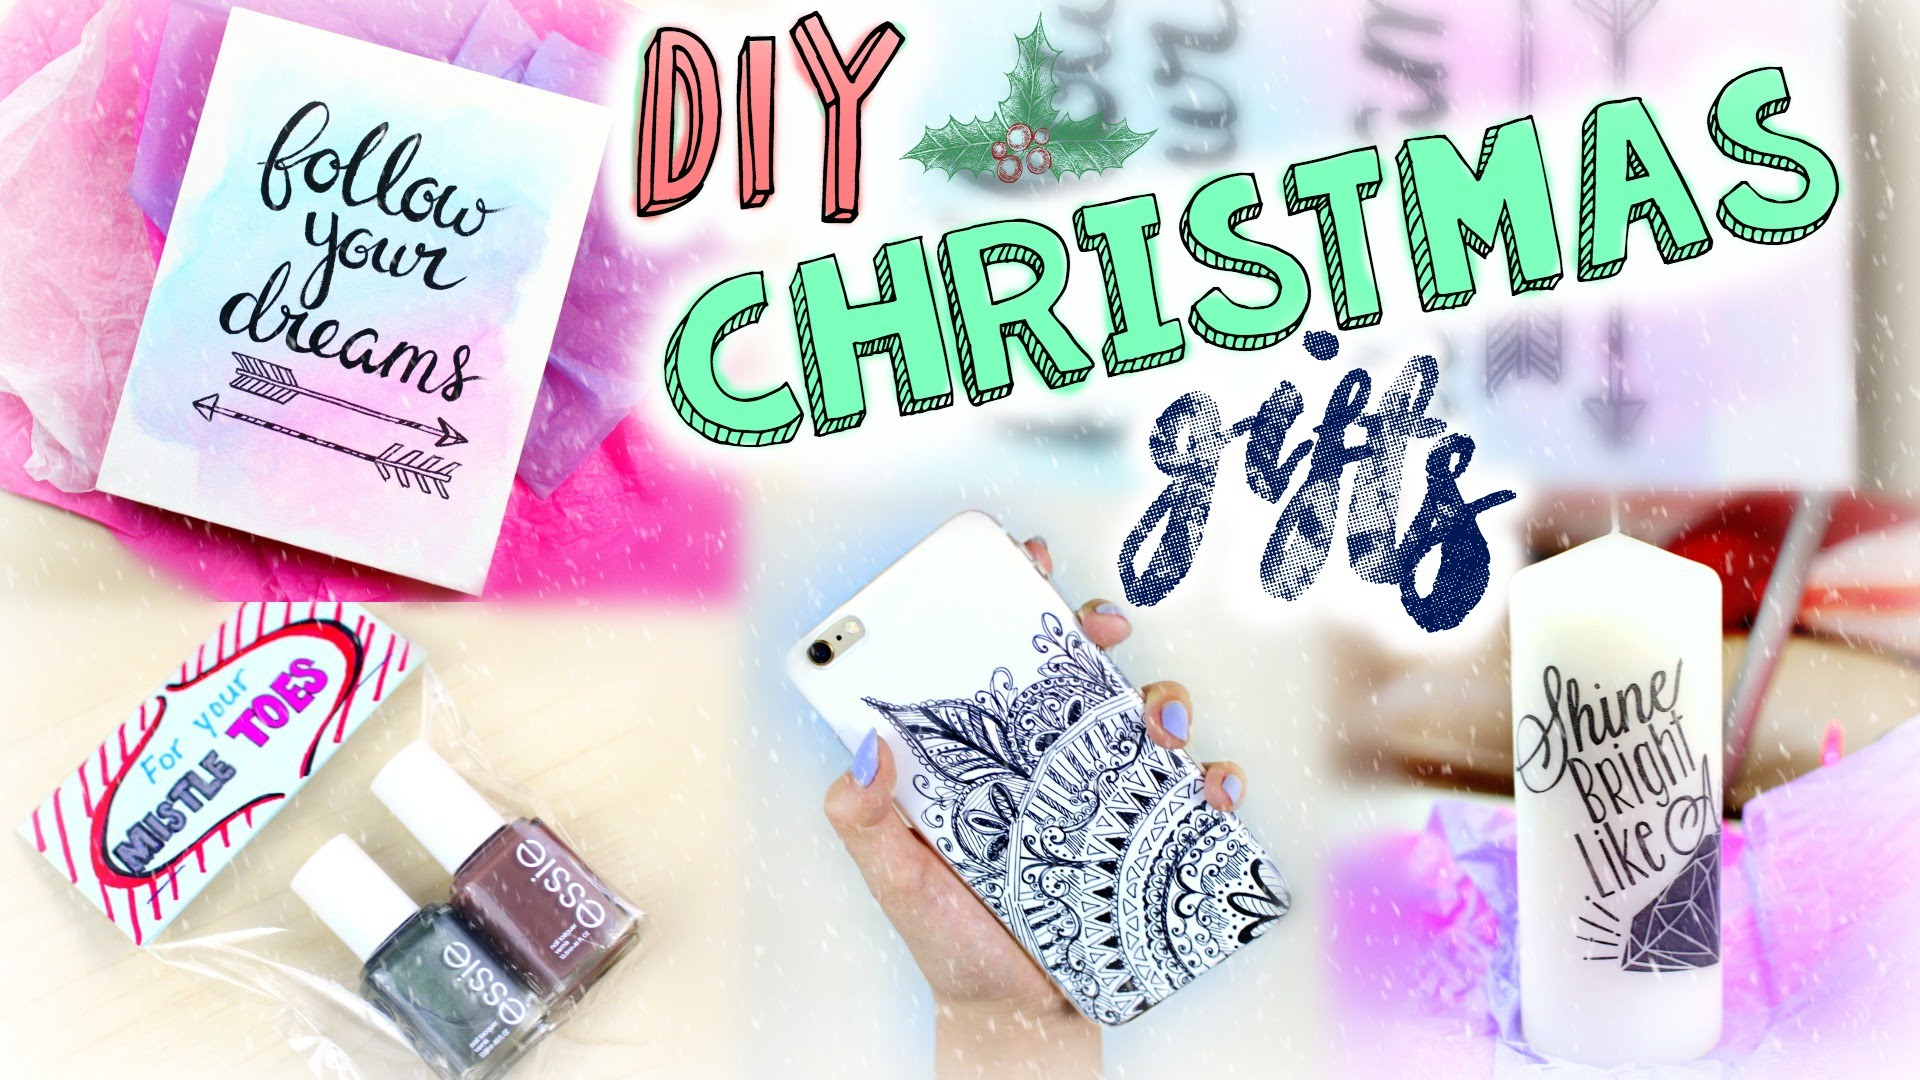 Diy easy christmas gifts last minute presents for for Easy diy birthday gifts